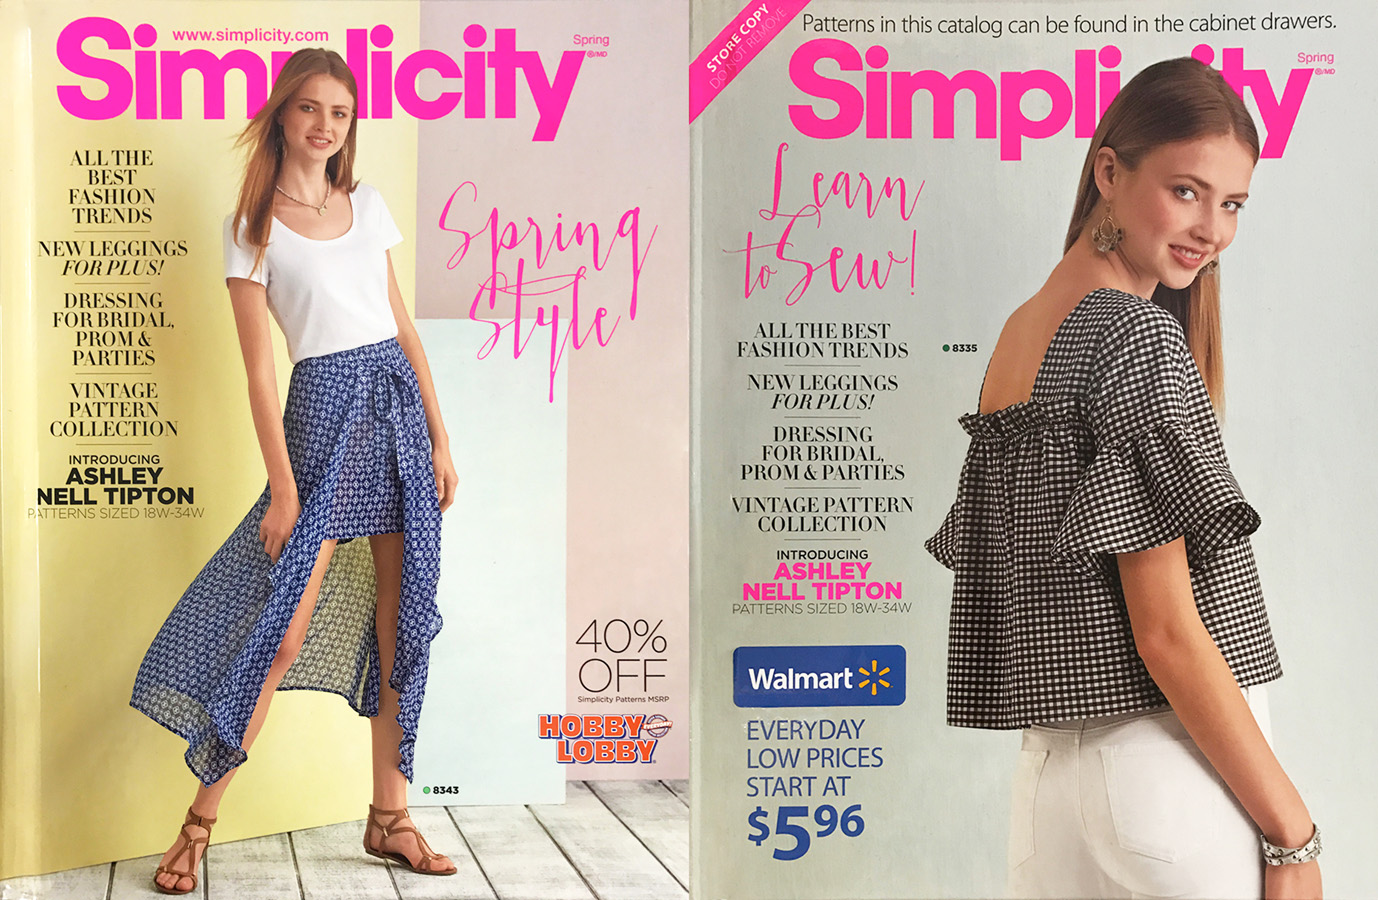 Simplicity Spring Covers